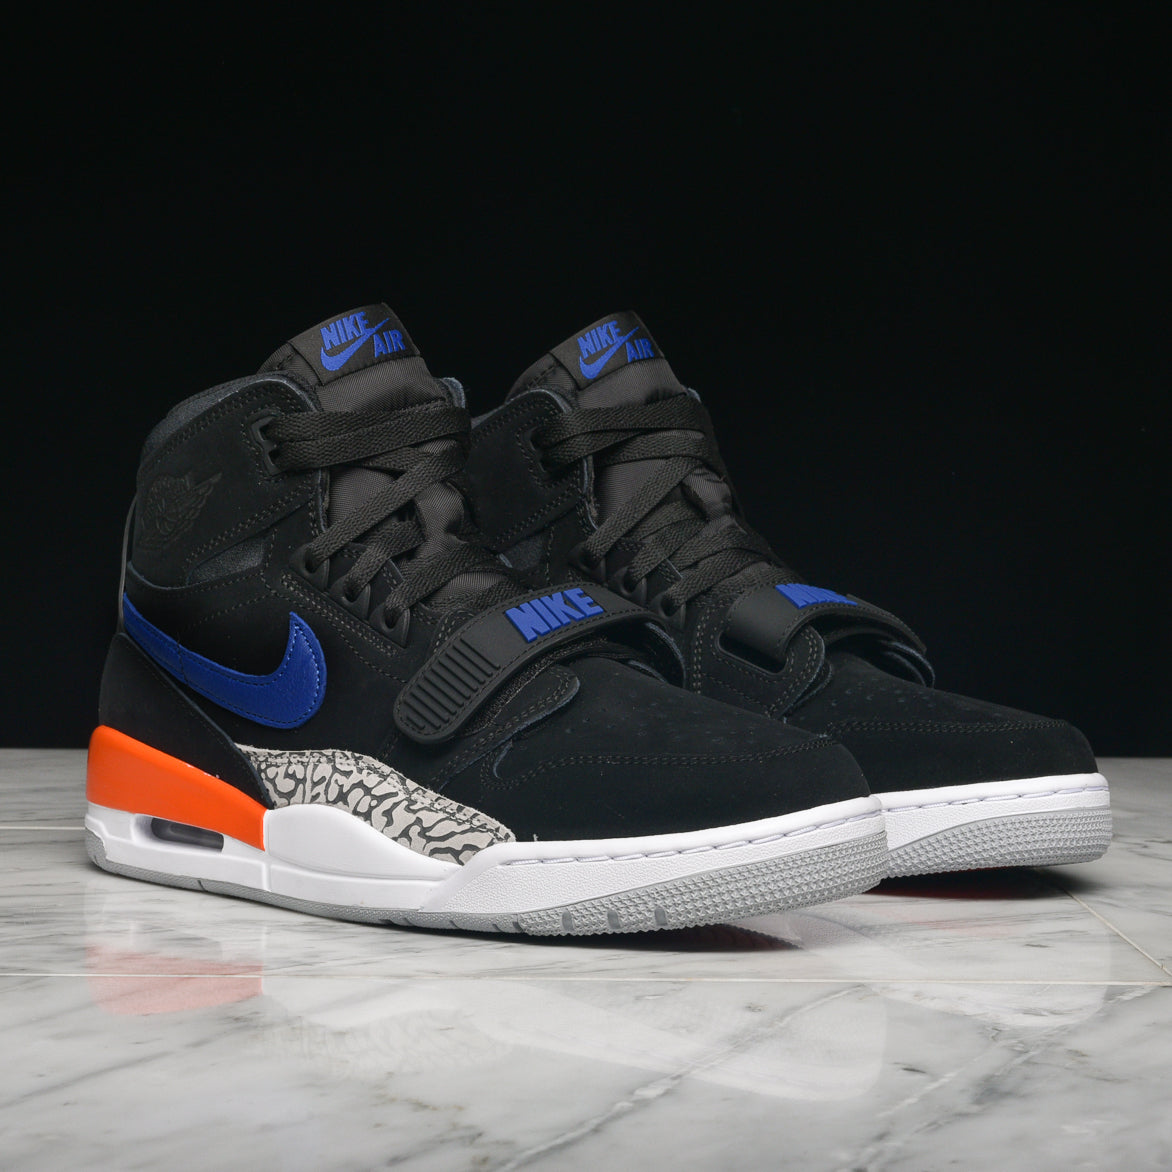 AIR JORDAN LEGACY 312 - BLACK / RUSH BLUE